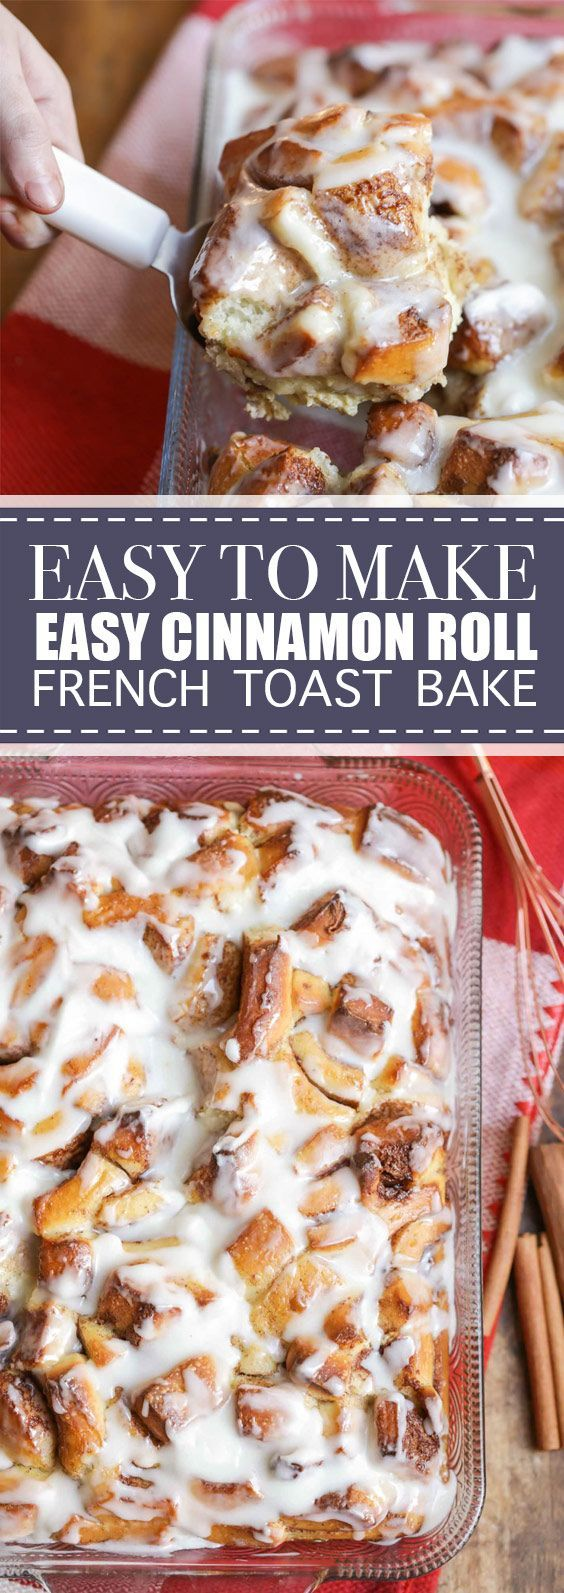 Photo of Easy Cinnamon Roll French Toast Bake | This overnight Cinnamon Roll French Toast…